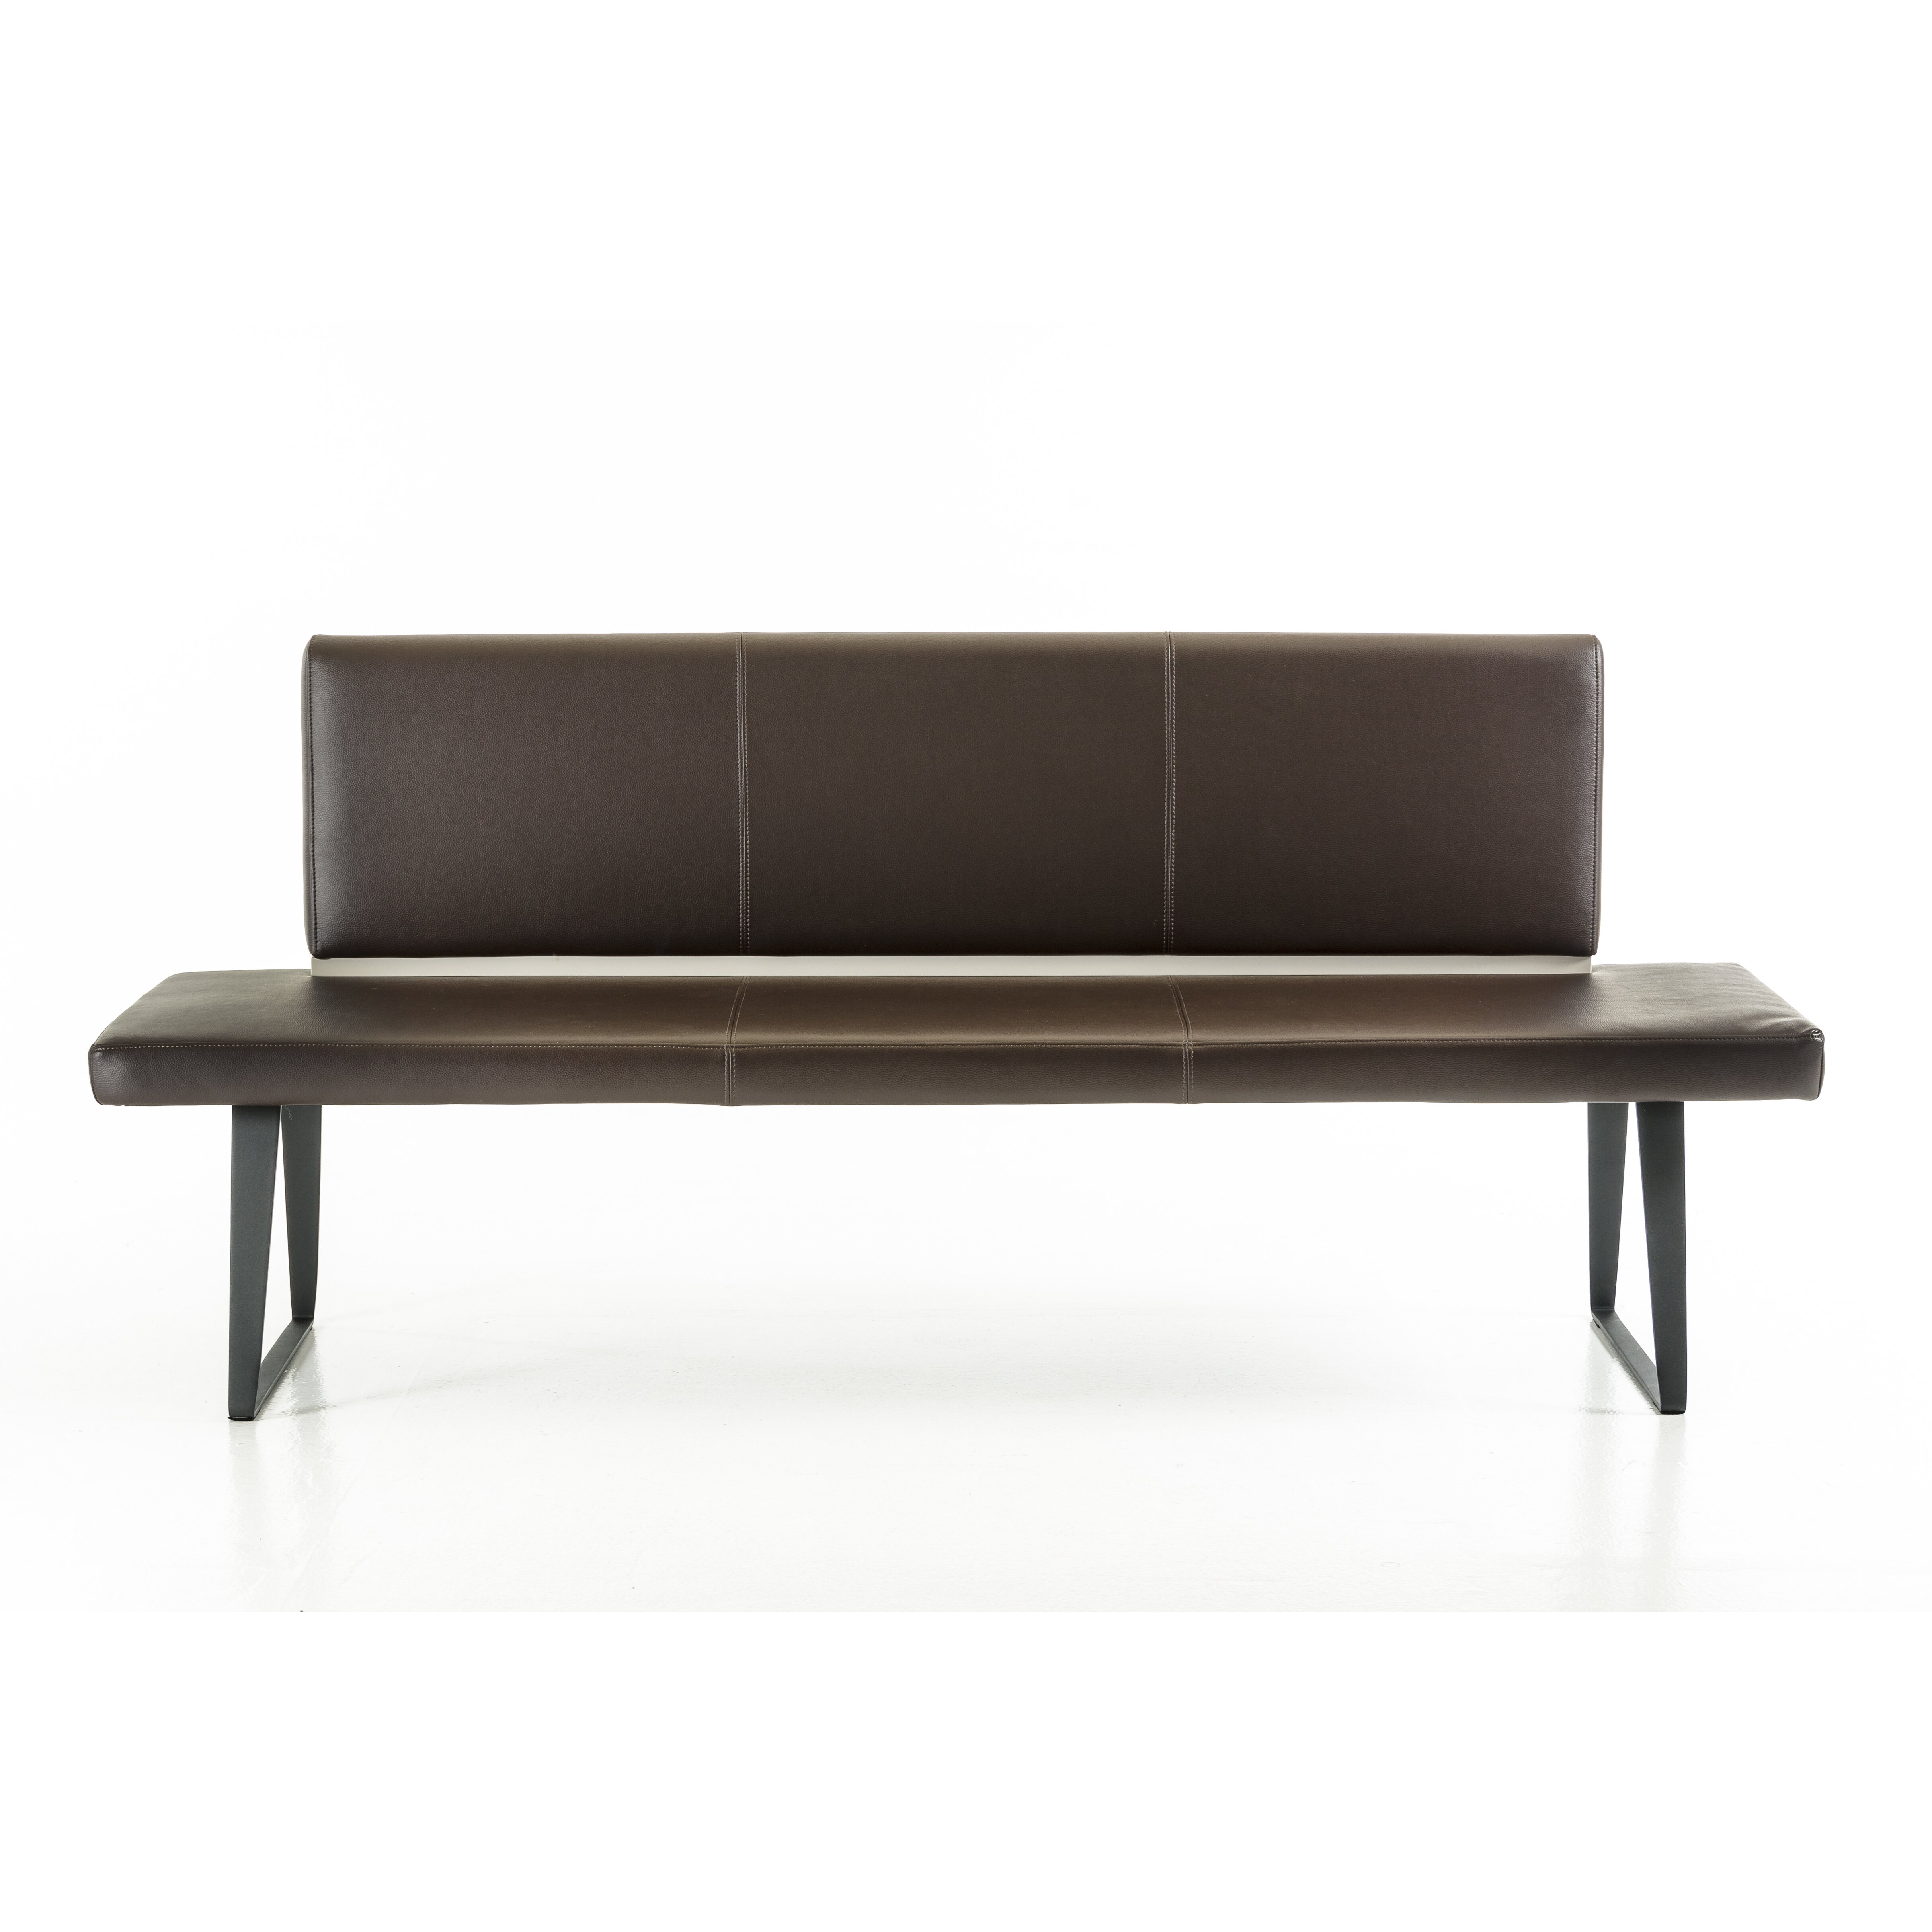 Padded Benches Living Room Modern Contemporary Benches Allmodern